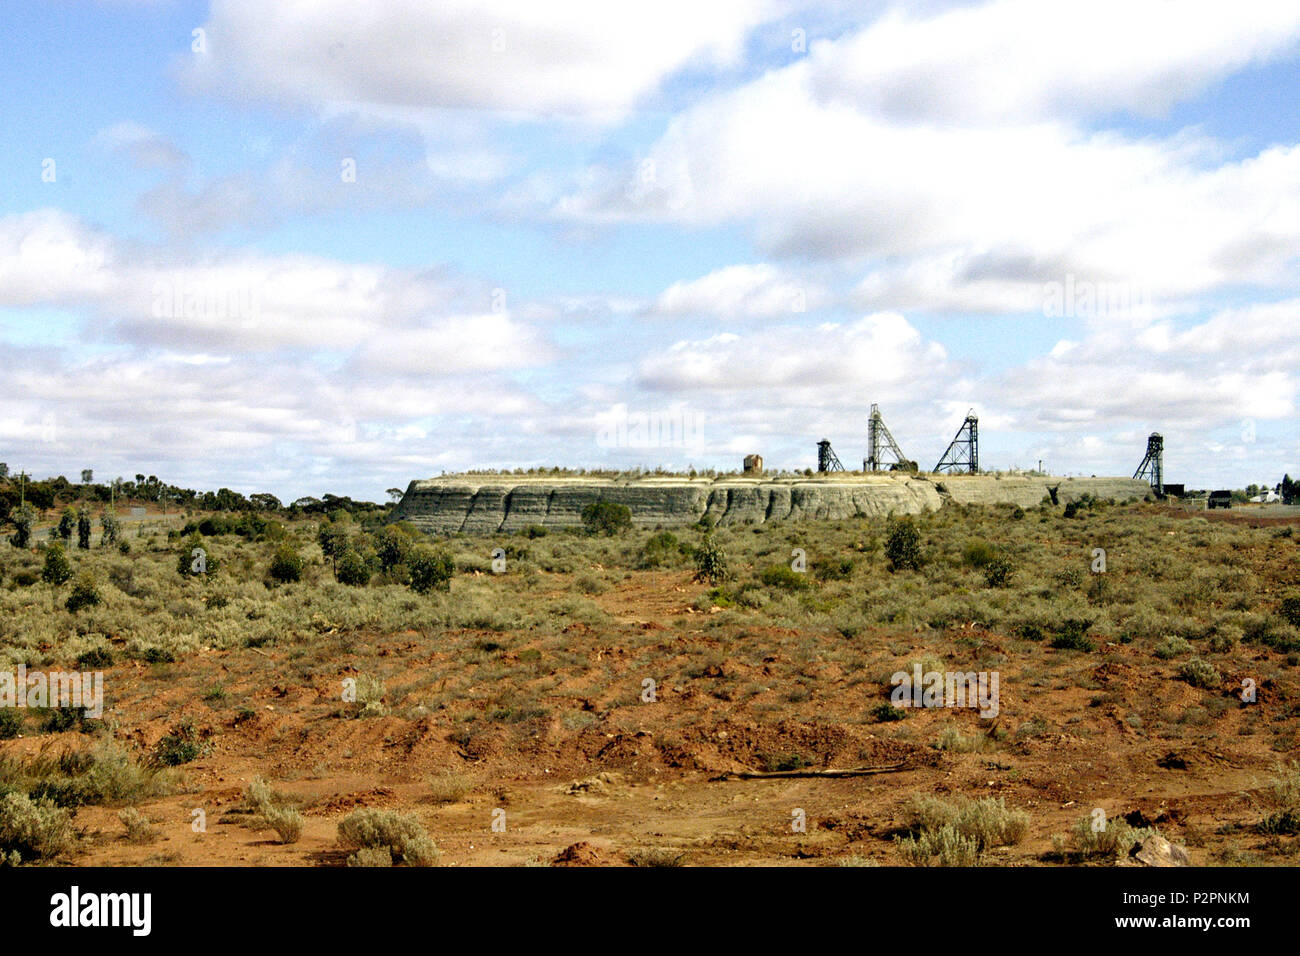 View of a gold mine in Kalgoorlie, an area often referred to as the Golden Mile and was once referred to as the world's richest square mile. WA. - Stock Image